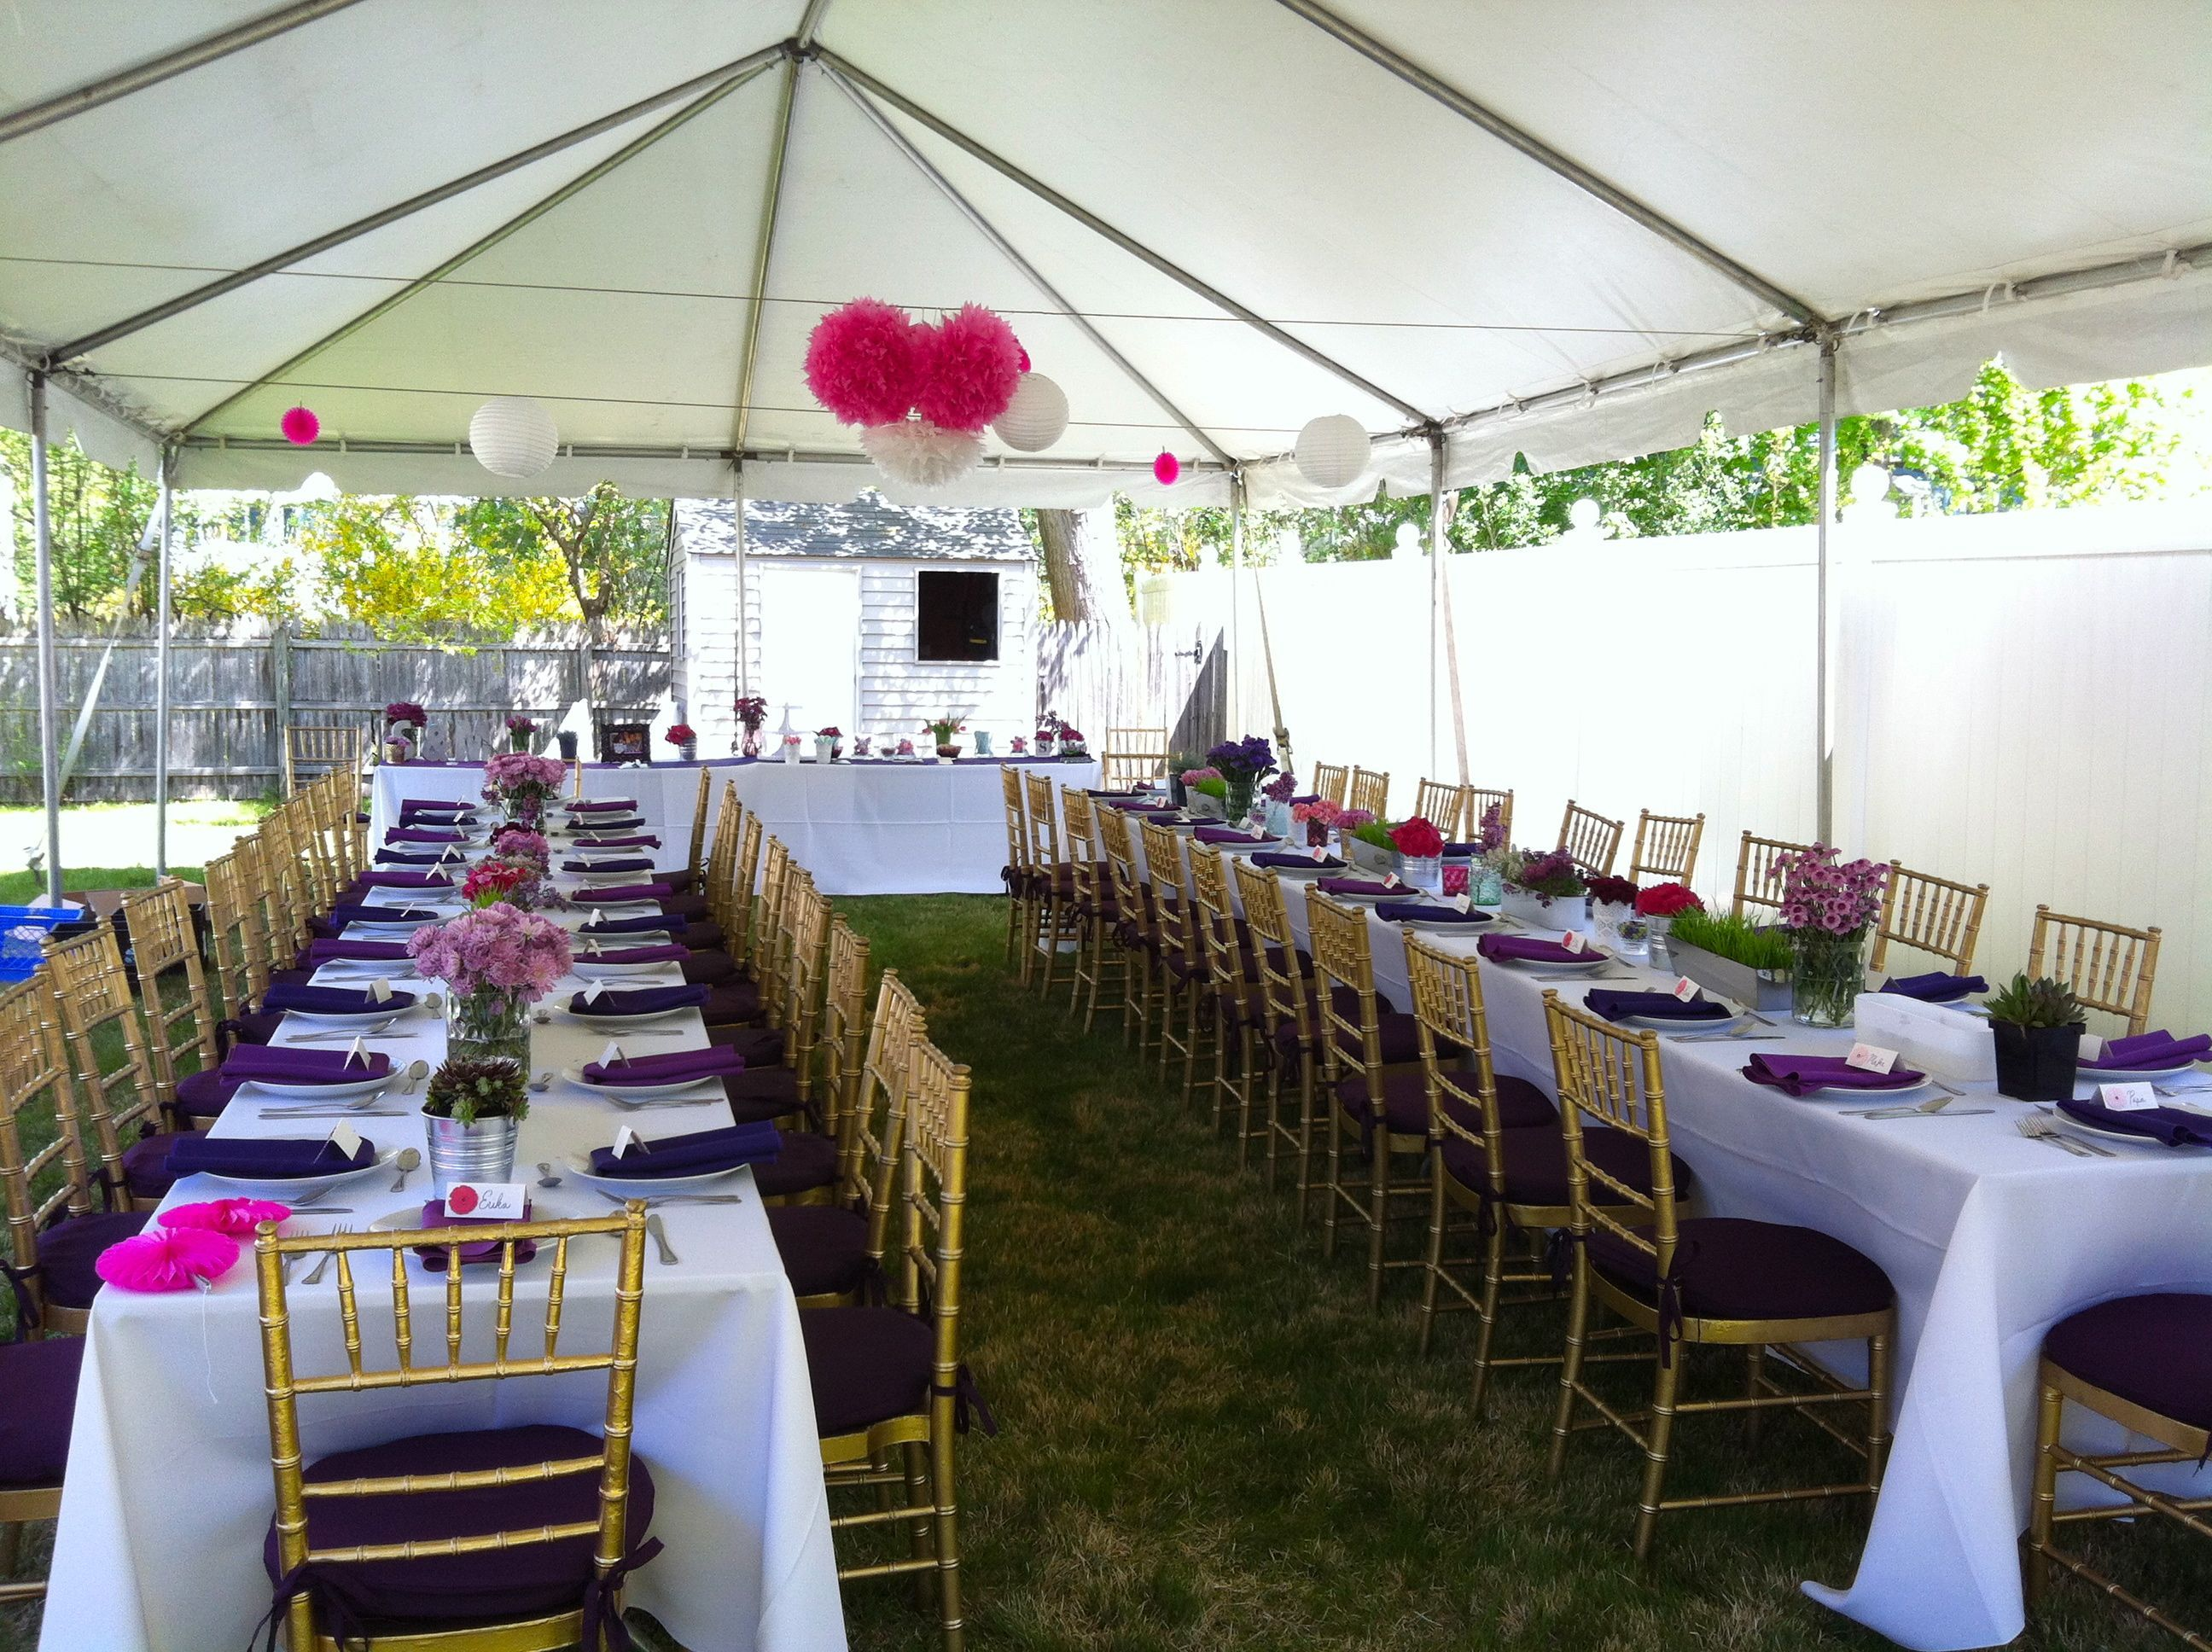 Merveilleux Backyard Engagement Party, Tent, White Table Linens With Purple Napkins,  Gold Chivari Chairs